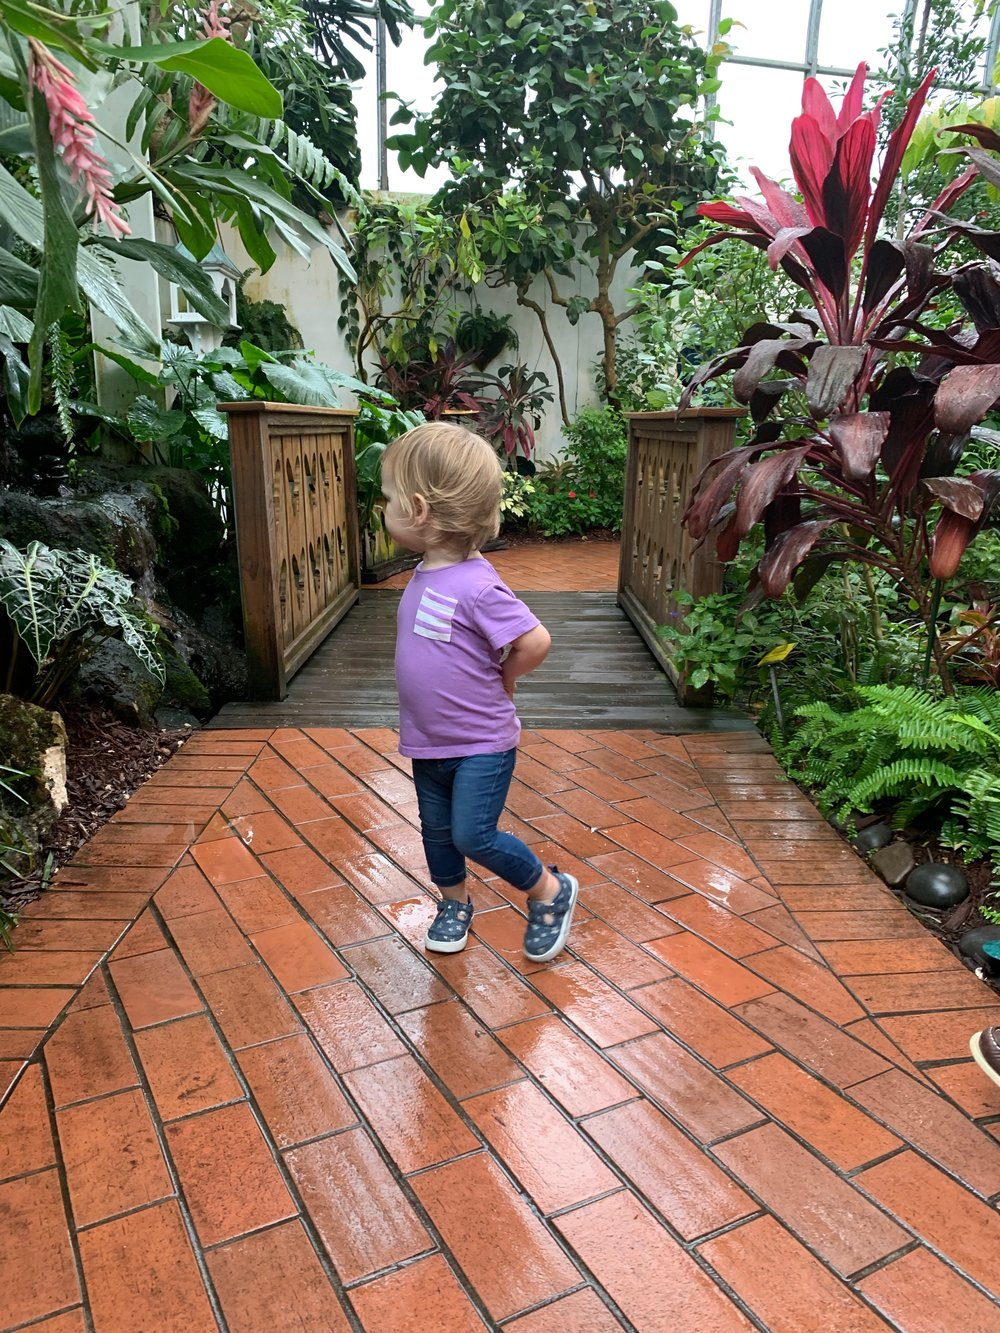 Key West Butterfly Conservancy | Family Friendly | Travel | By Sarah Rae